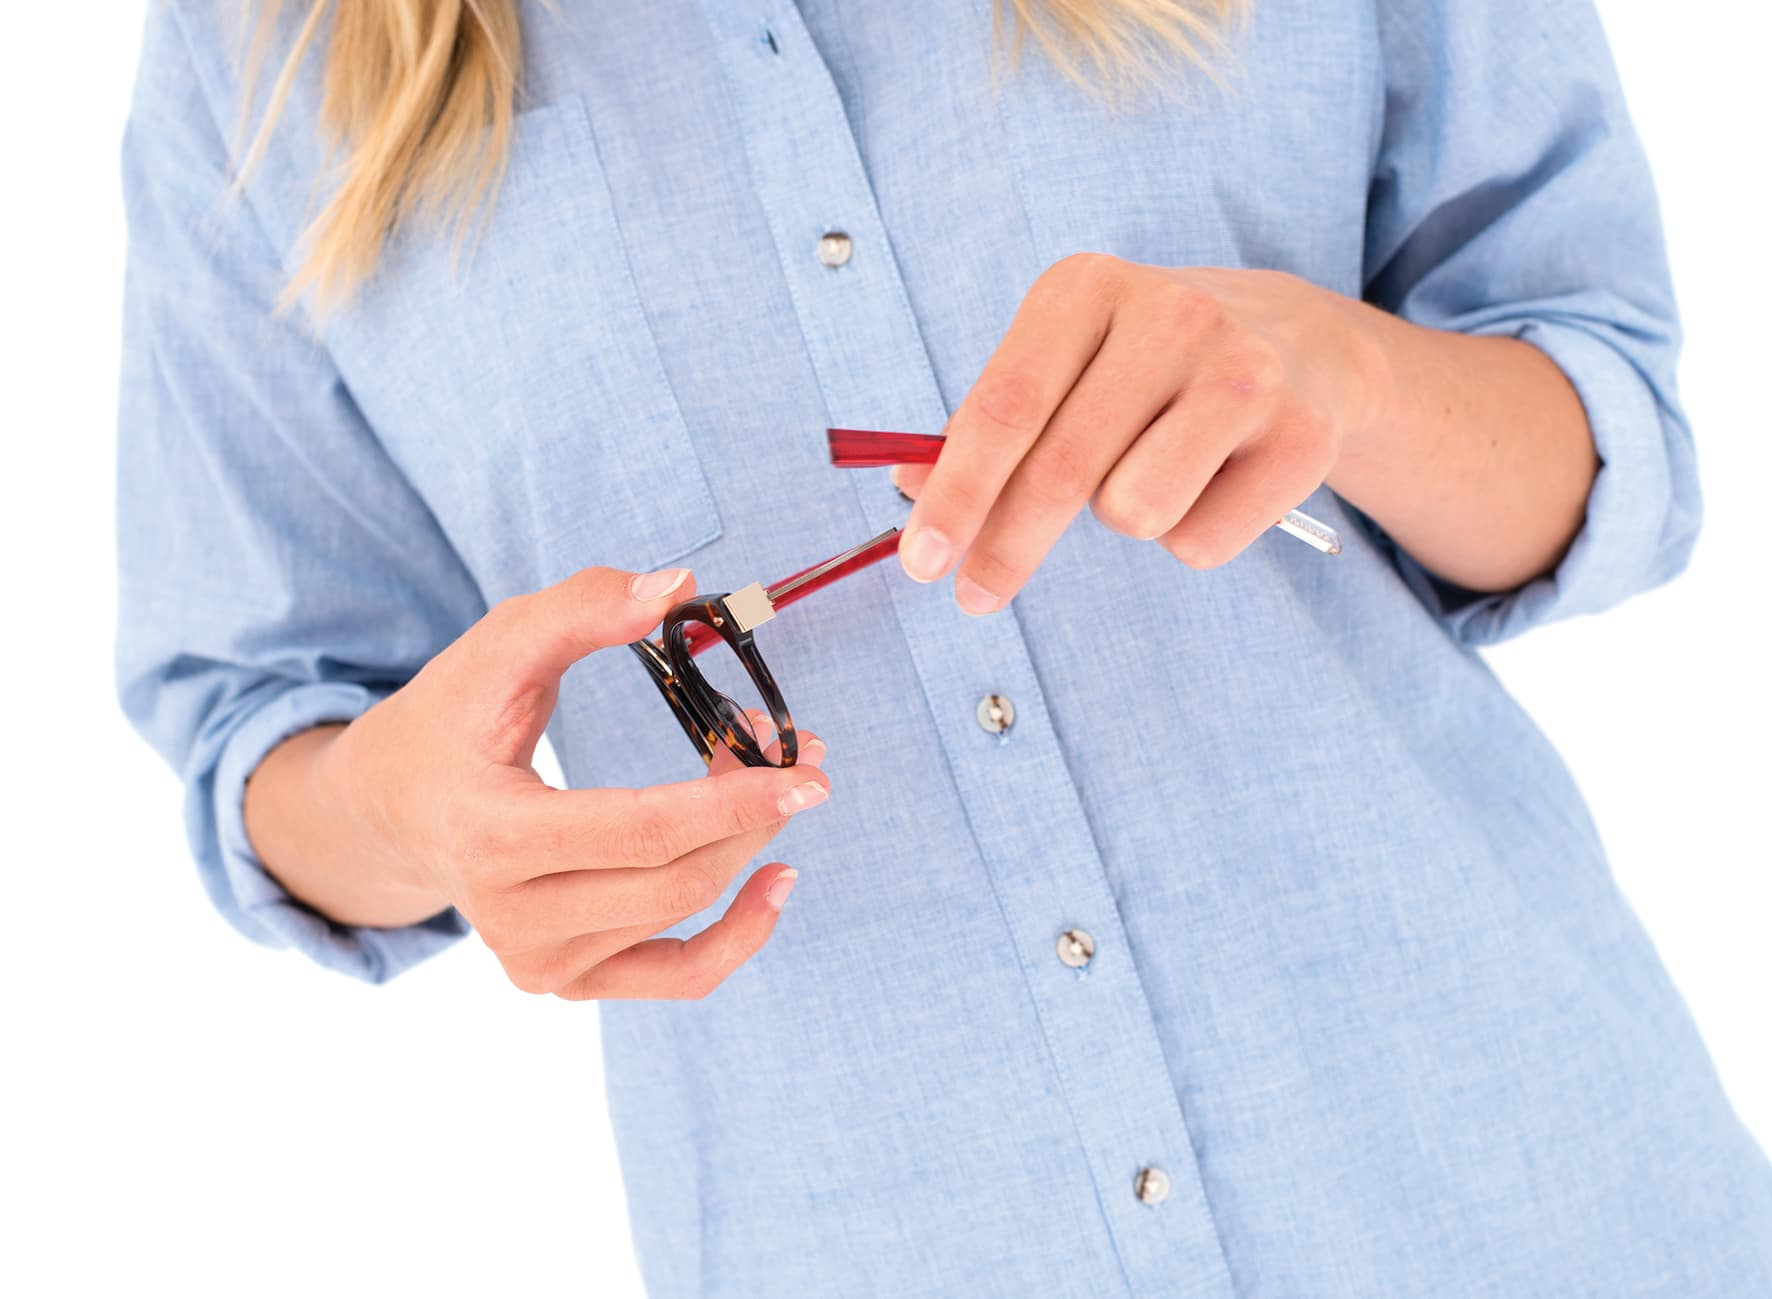 Woman in pale blue button down shirt removing a red transparent arm from a pair of round tortoiseshell acetate glasses